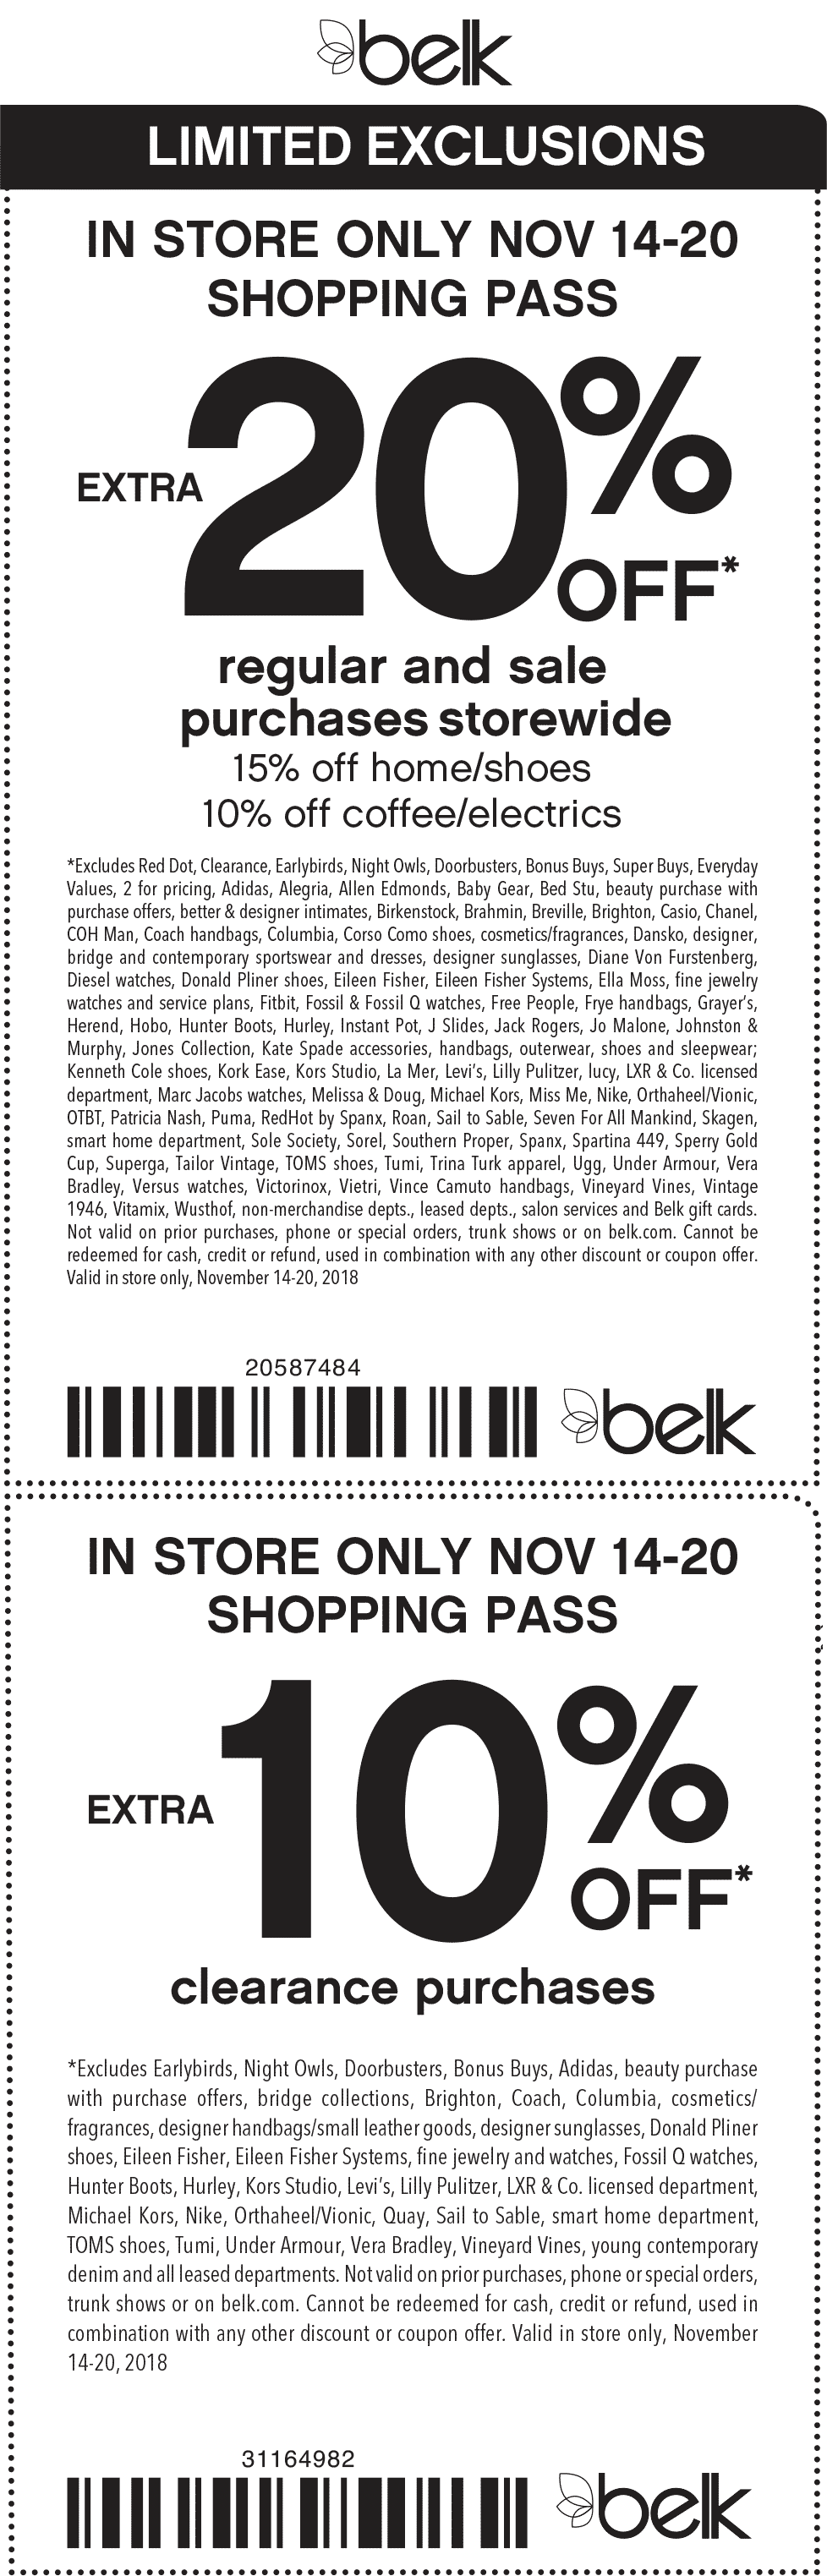 Belk Coupon May 2019 Extra 20% off at Belk